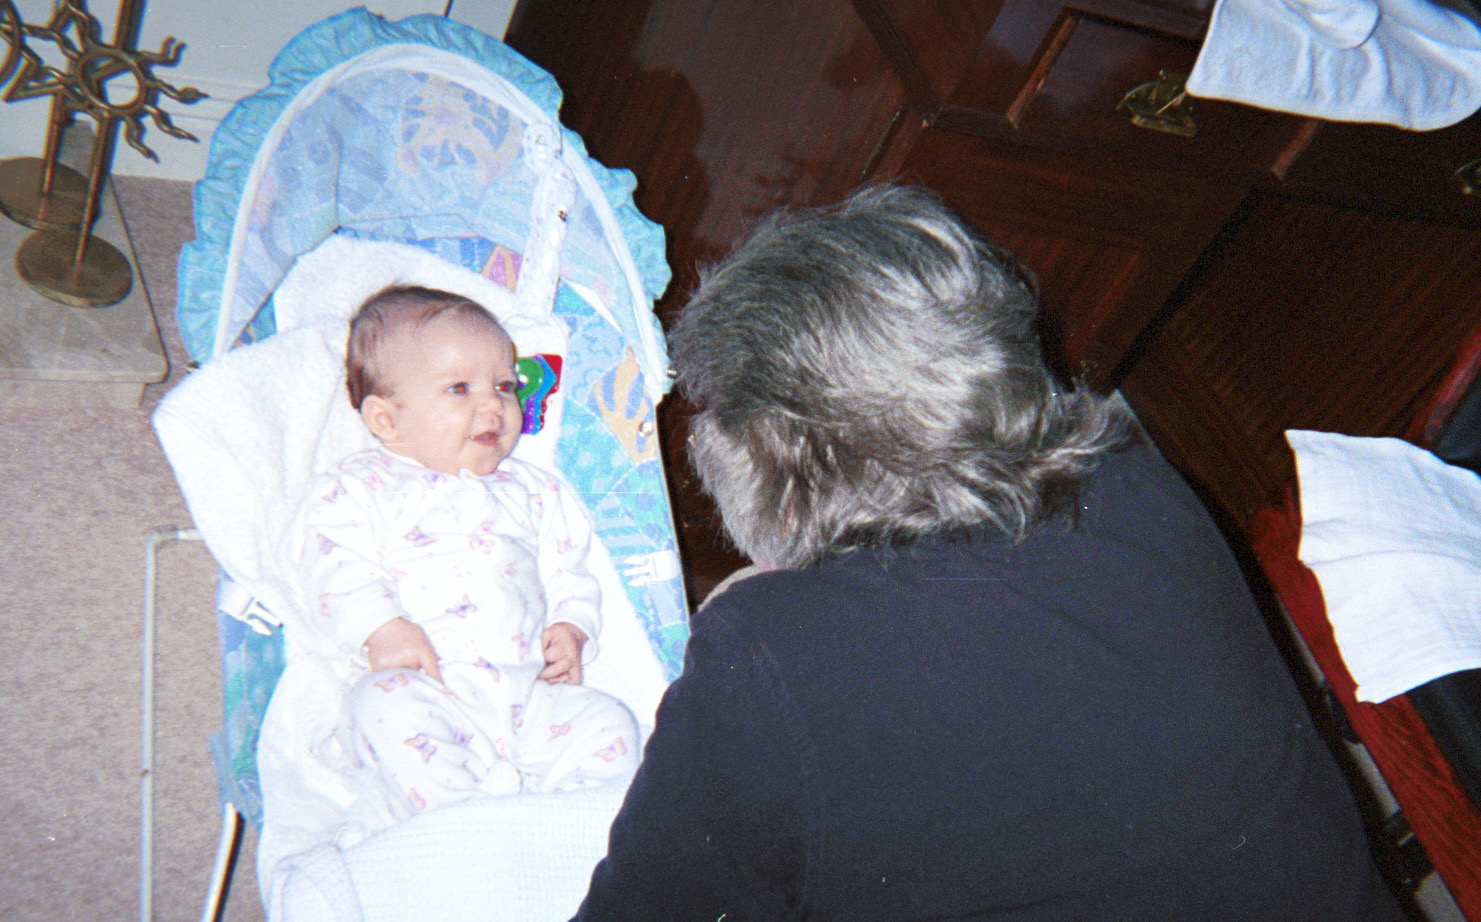 Grandma Mary Lou on first visit to meet first grandchild, Natalie. UK December 2000